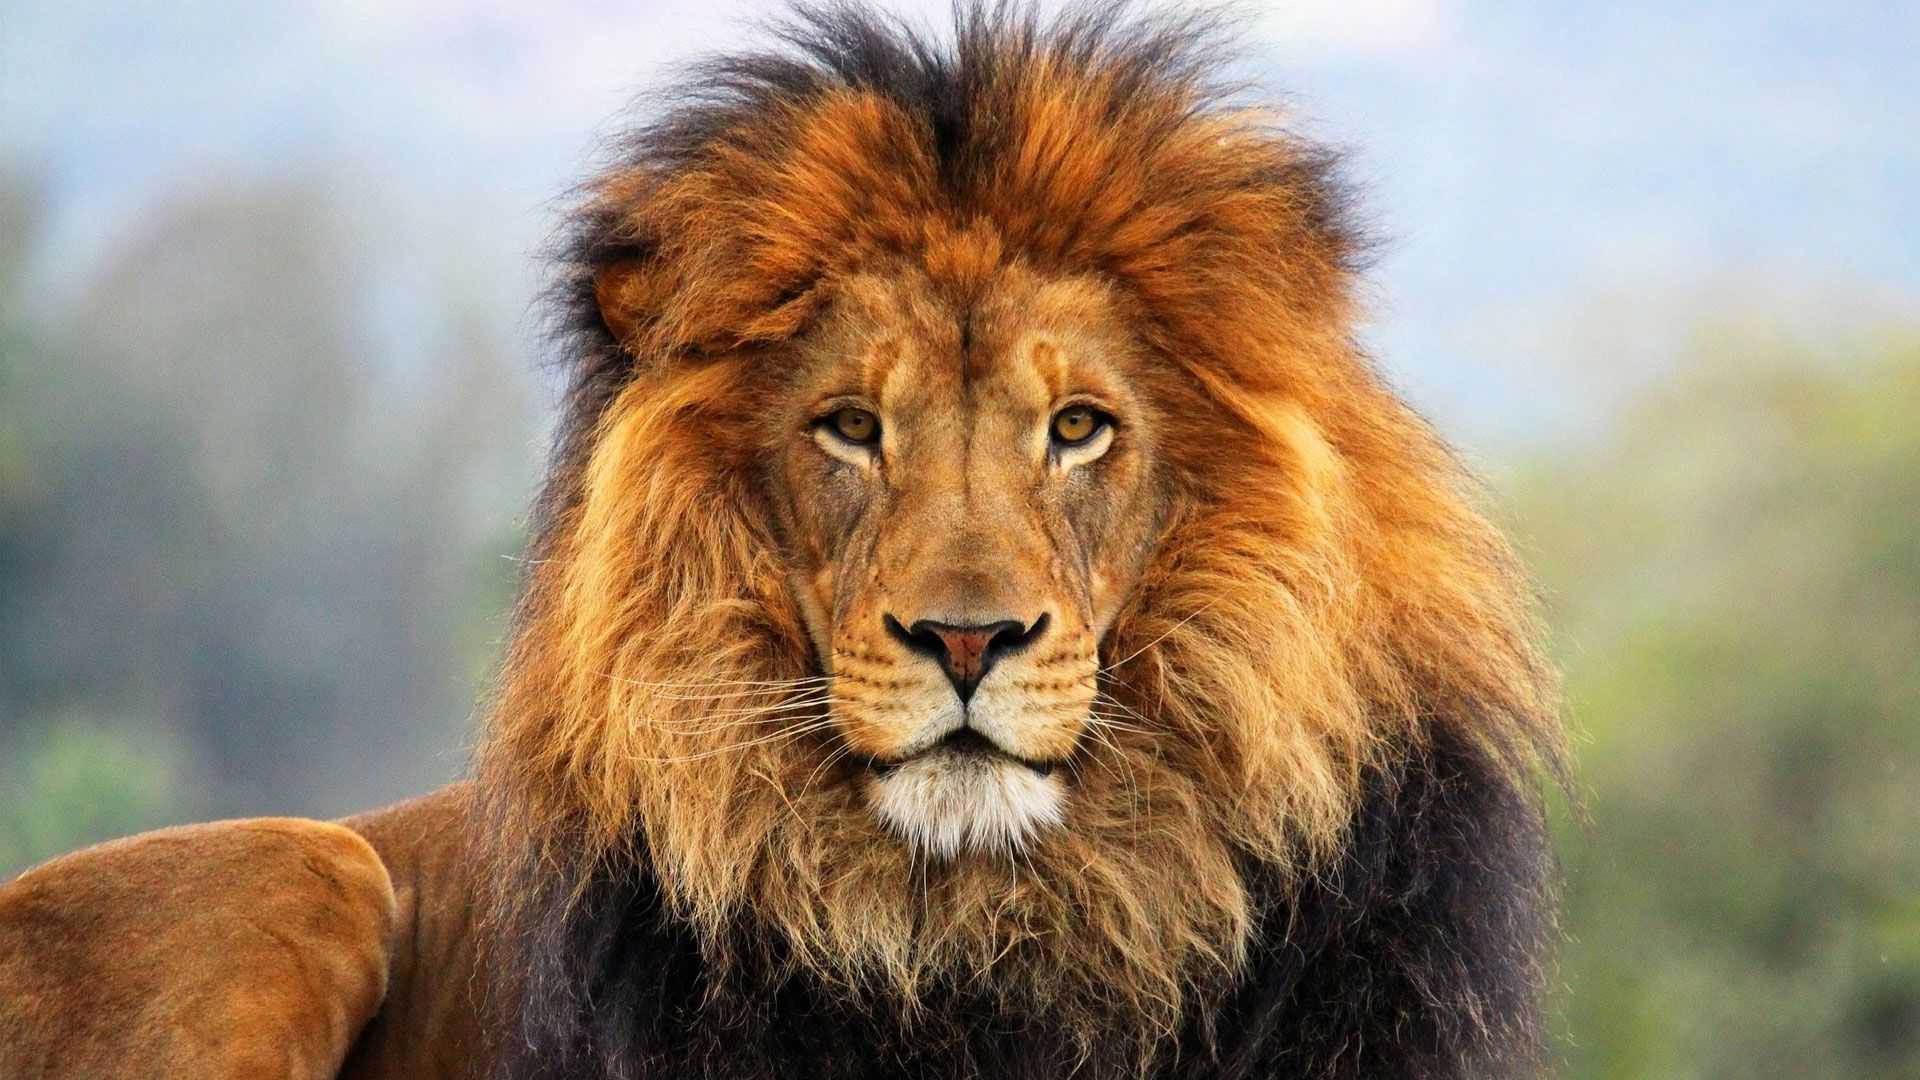 Get Inspired For 1080p Full Hd Lion Wallpaper Pictures